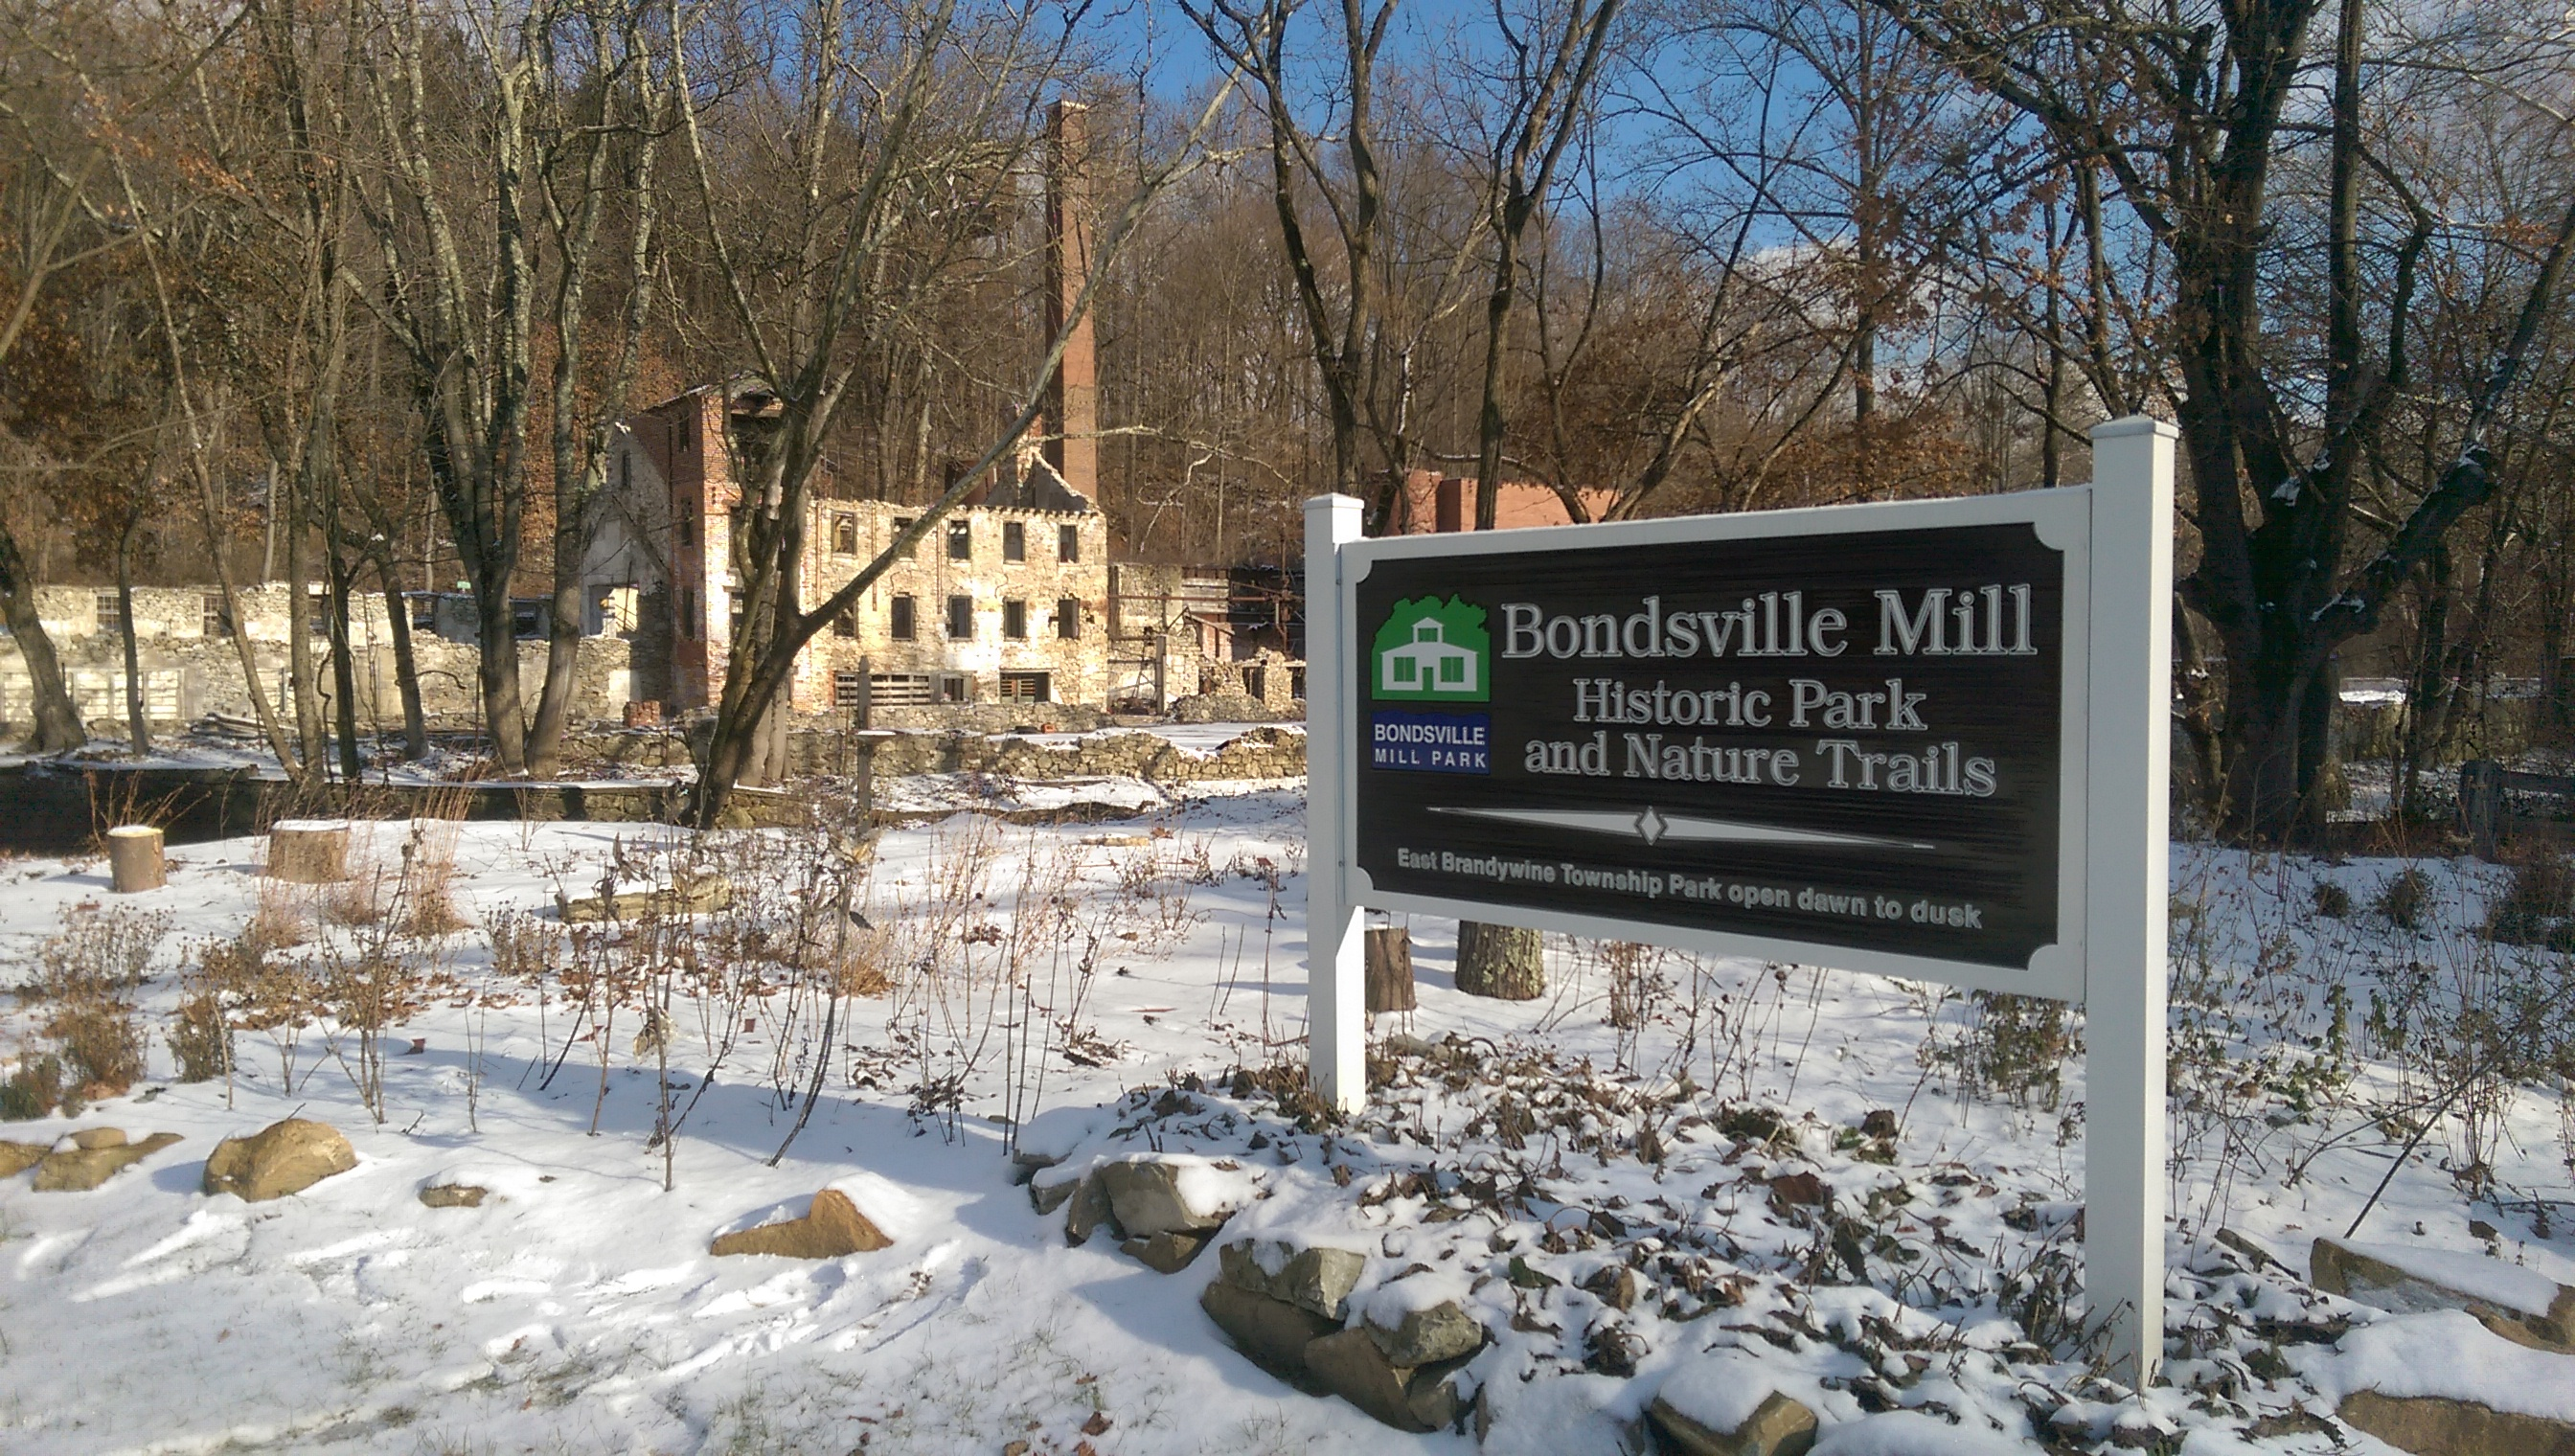 East Brandywine's Bondsville Mill Park Provides Visitors Historical, Natural Experience